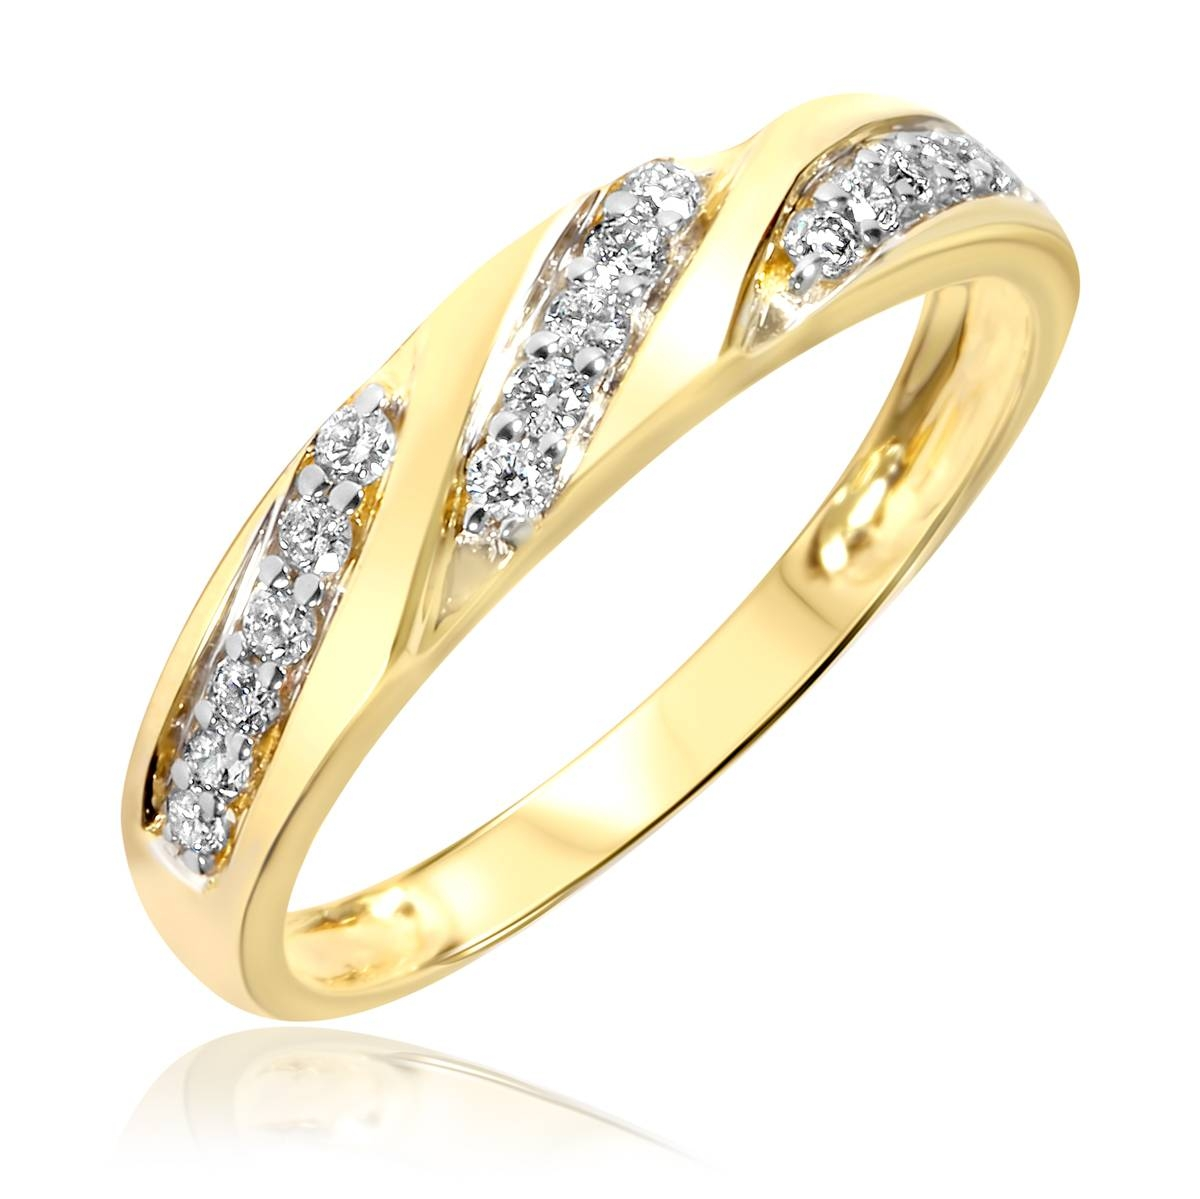 1 Carat Diamond Trio Wedding Ring Set 14K Yellow Gold For Women's Yellow Gold Wedding Bands (View 1 of 15)